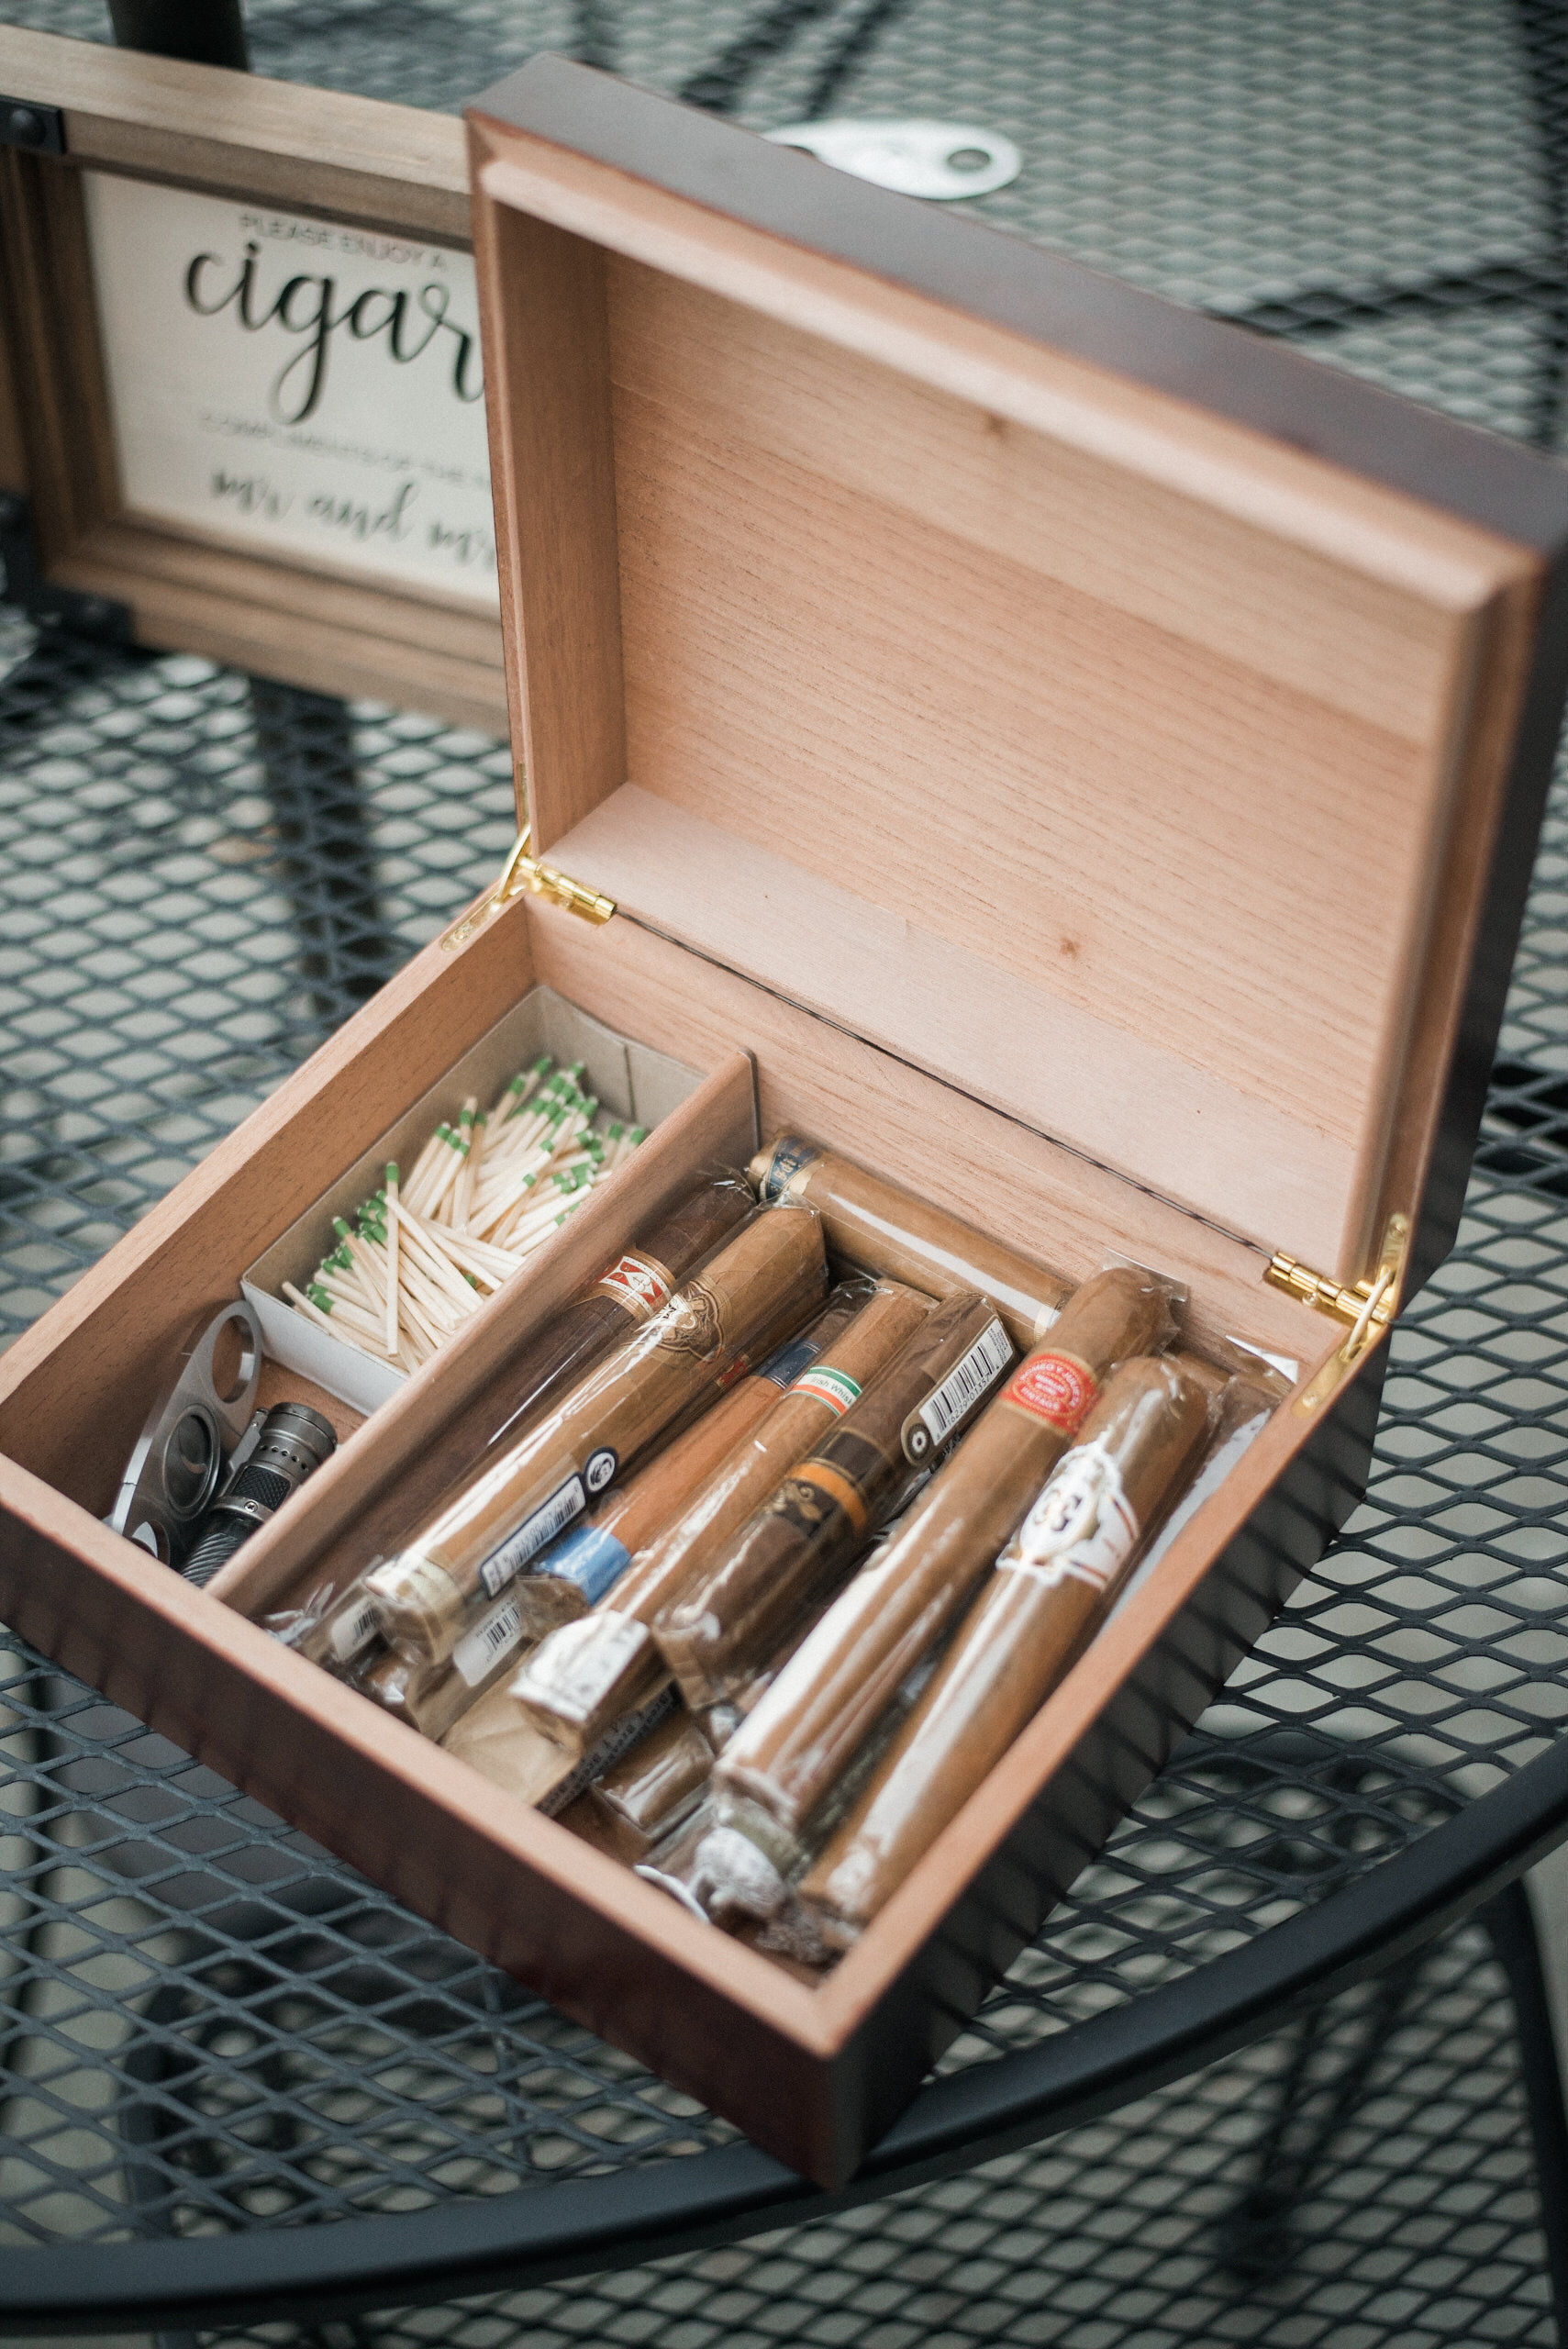 Cigars on table at wedding reception